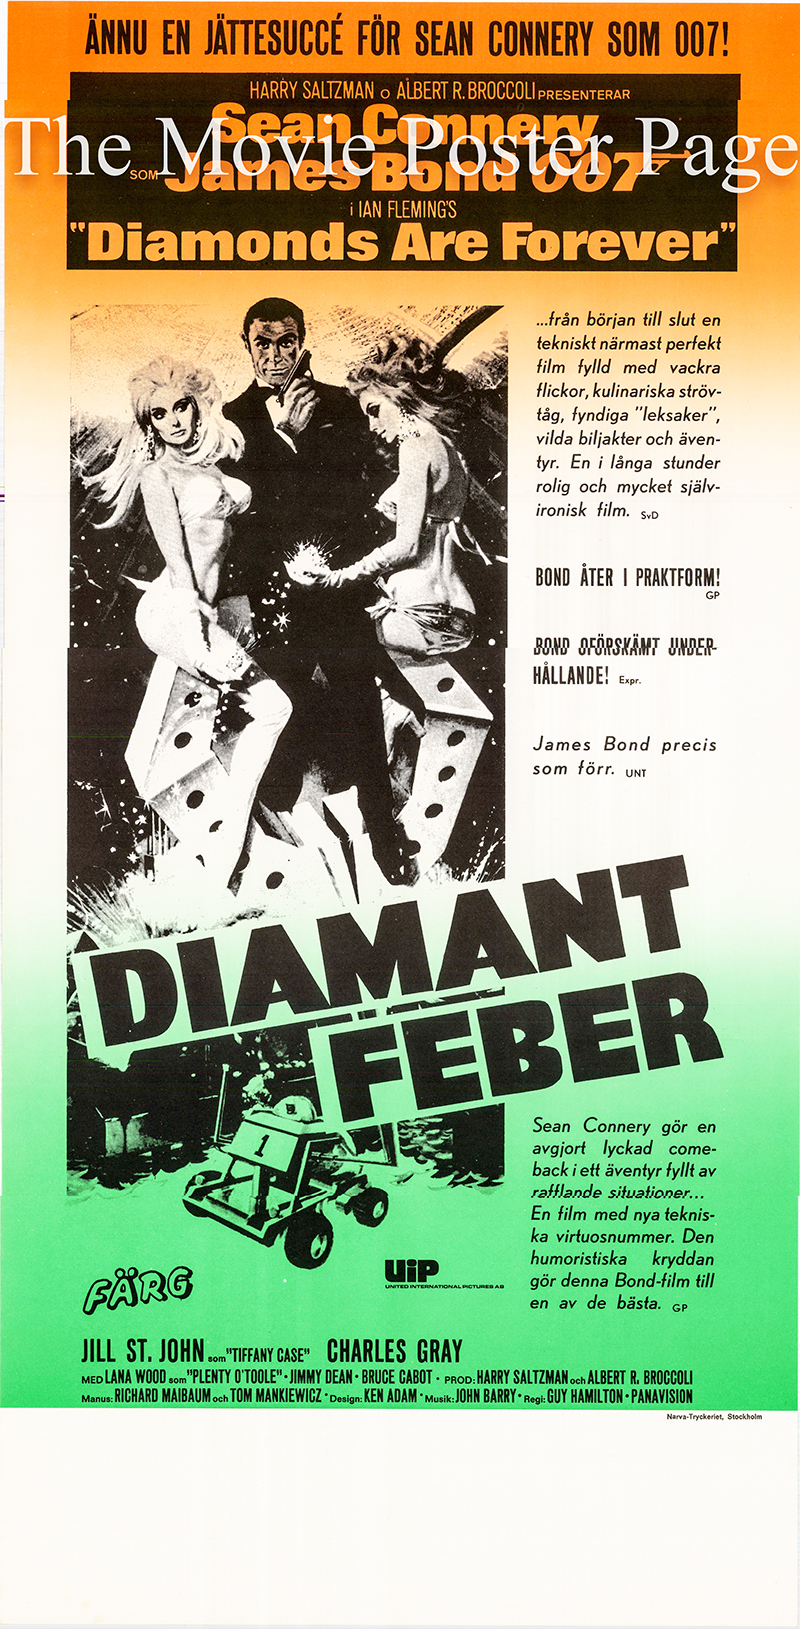 Pictured is a Swedish insert poster for a 1980s rerelease of the 1971 Guy Hamilton film Diamonds are Forever starring Sean Connery as James Bond.